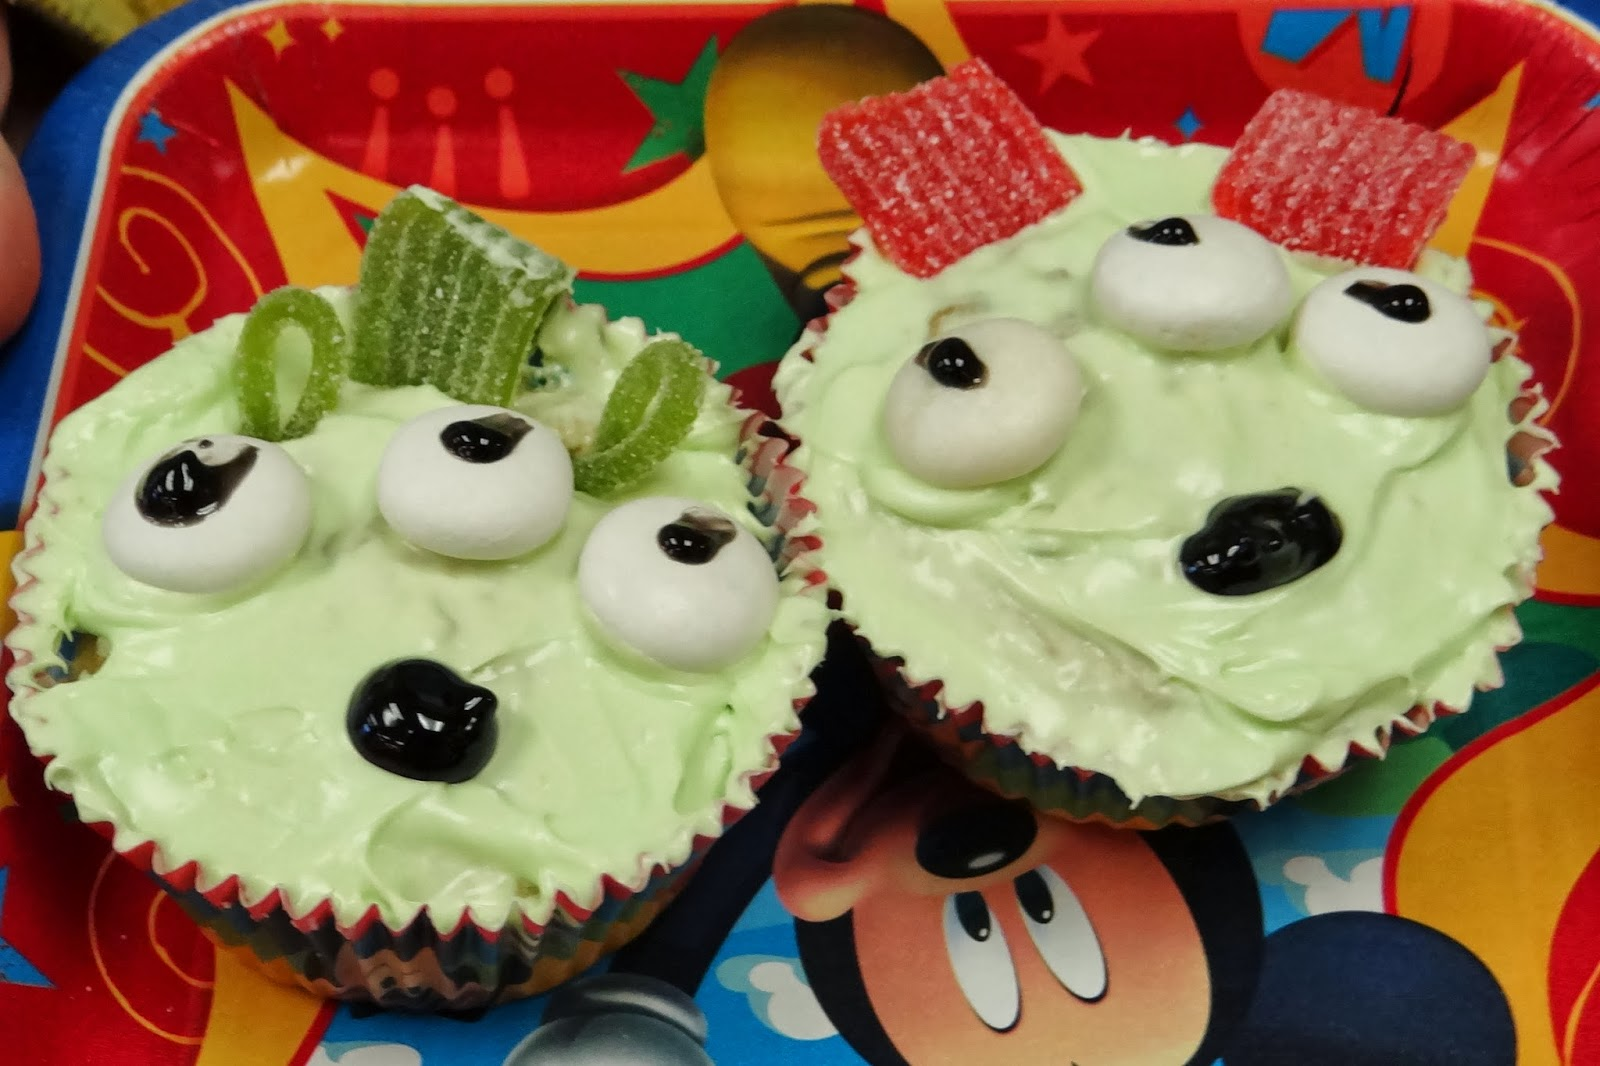 Toy Story Green Alien Cupcake - Showing Our #DisneySide Through Baking #spon